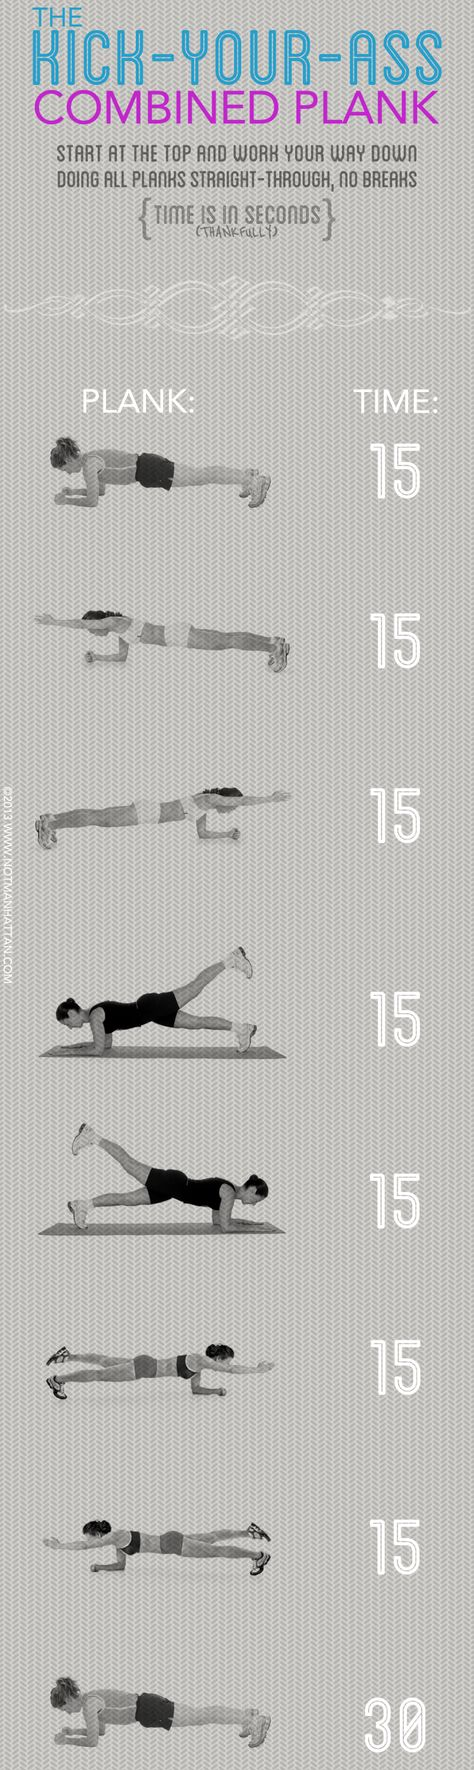 Kick-Your-Ass Combined Plank